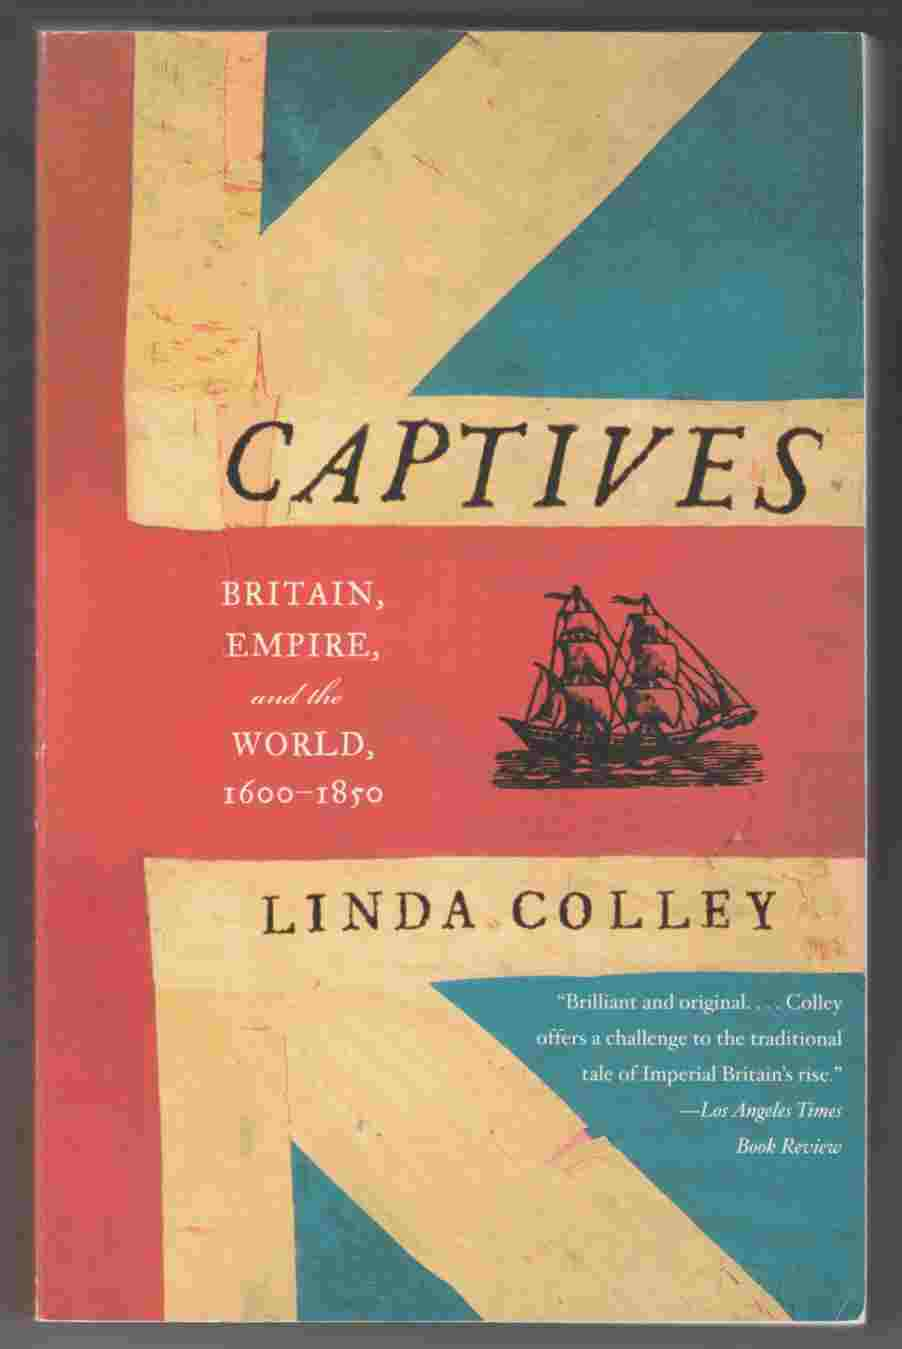 Image for Captives Britain, Empire, and the World, 1600-1850